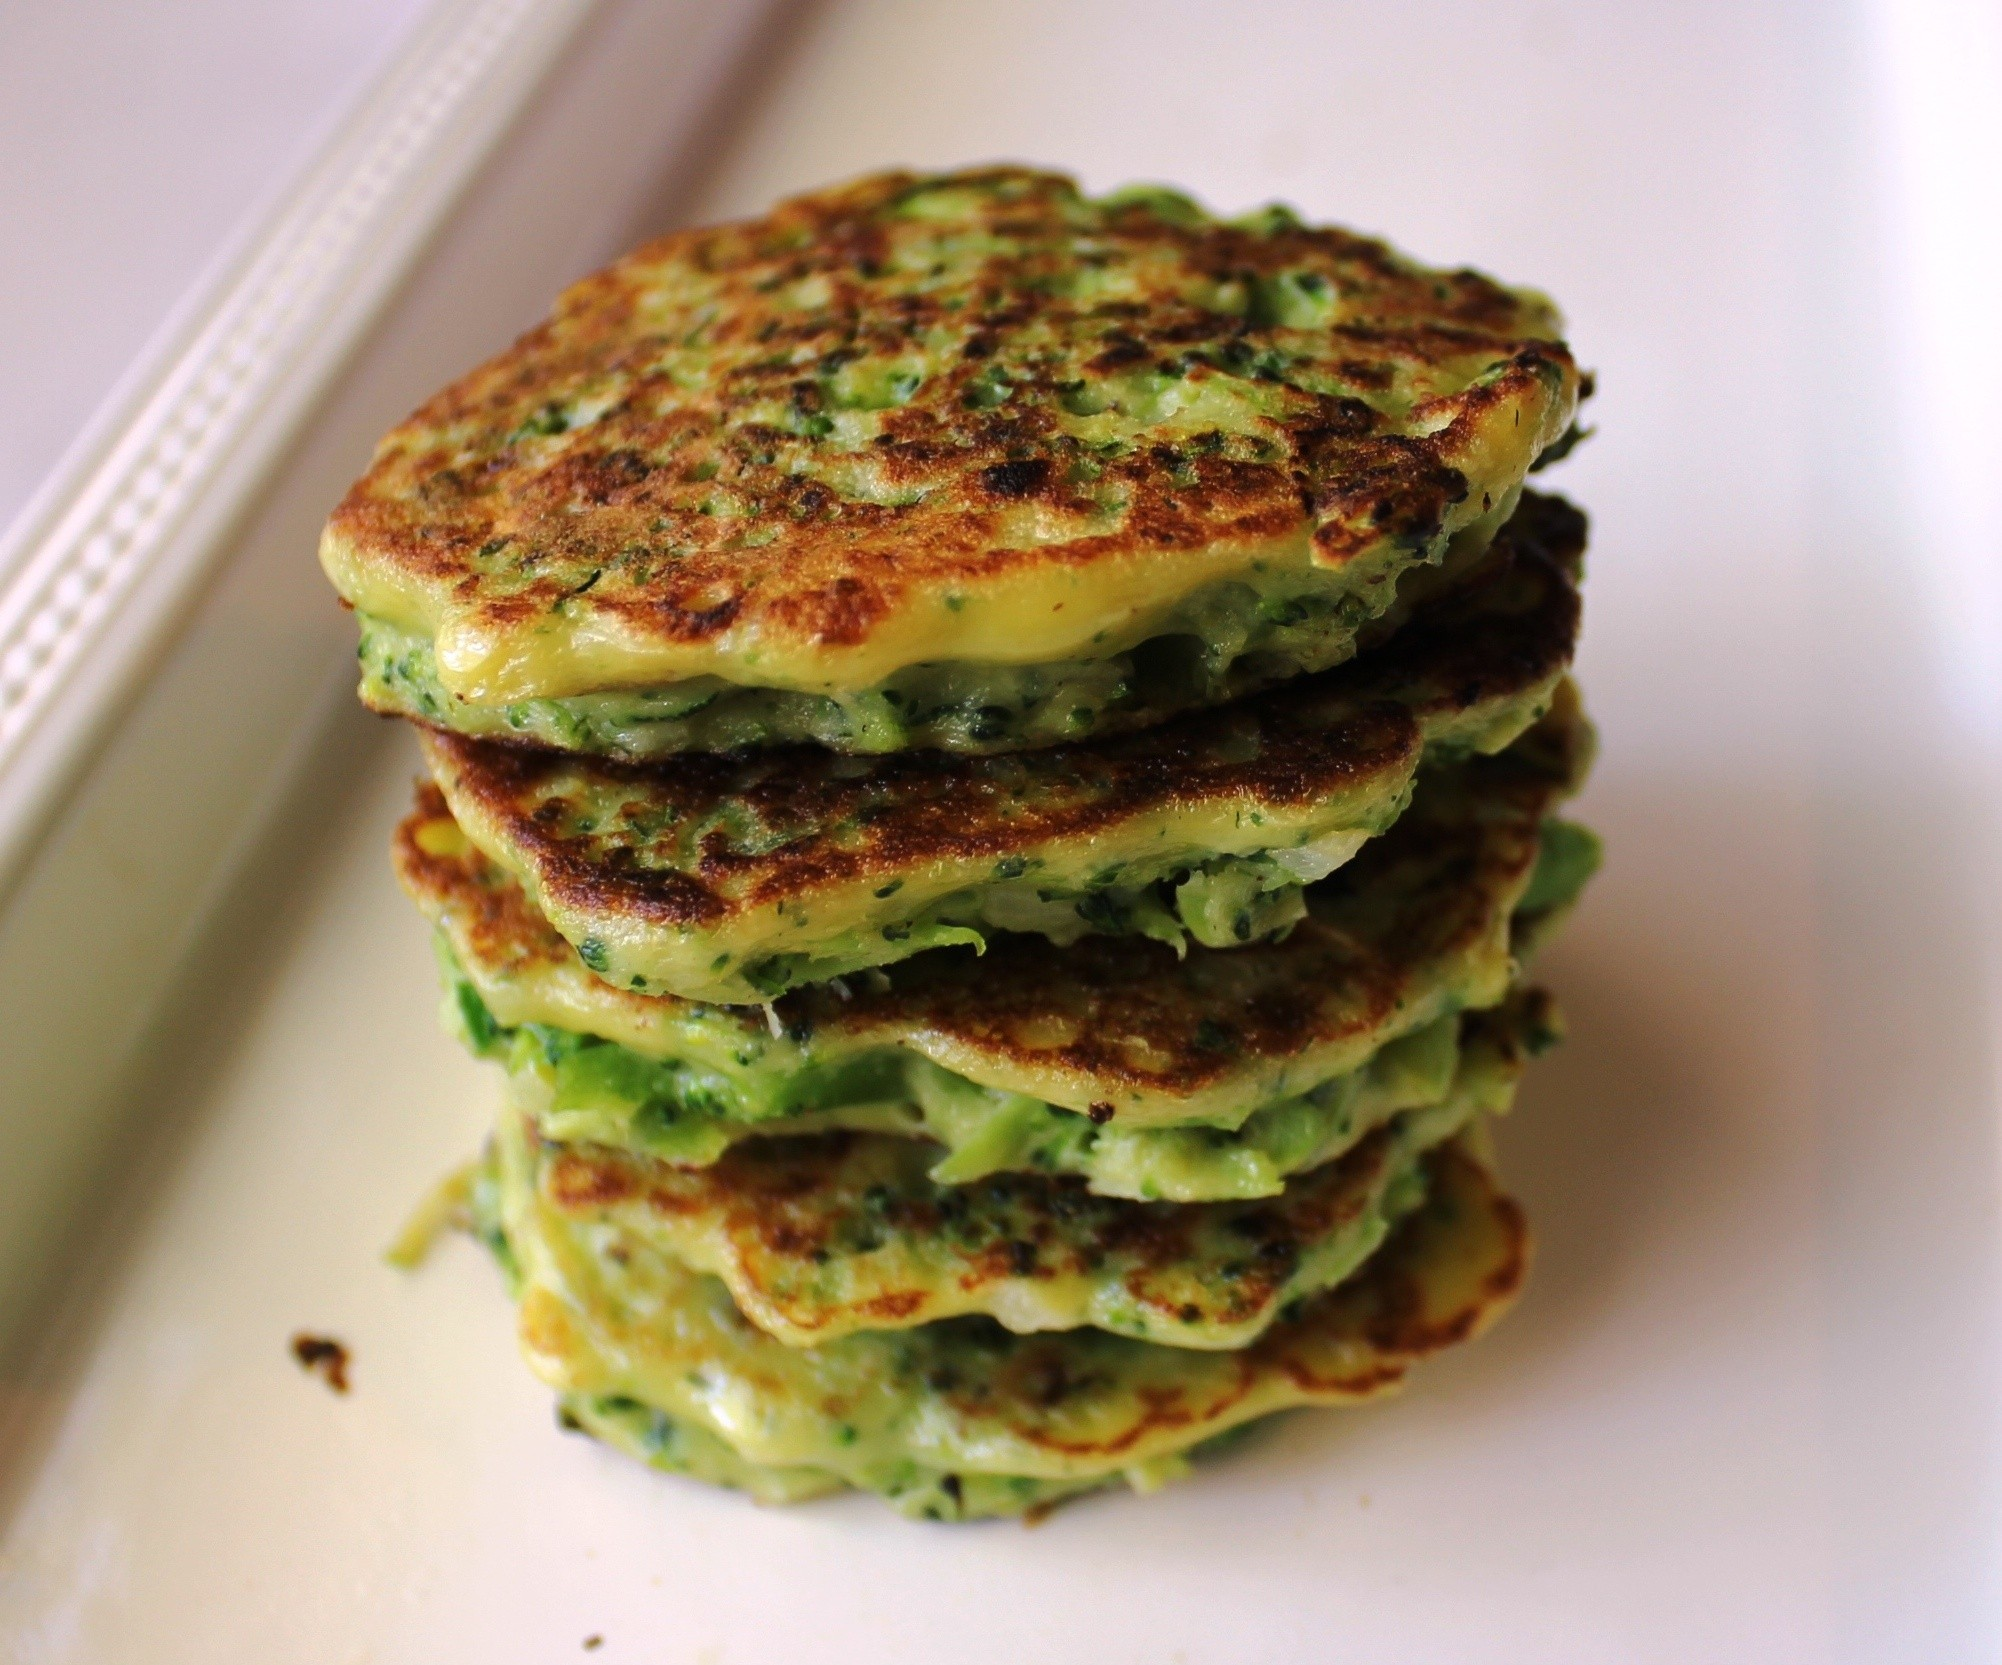 Broccoli and Zucchini Fritters (Gluten-Free, Dairy-Free)